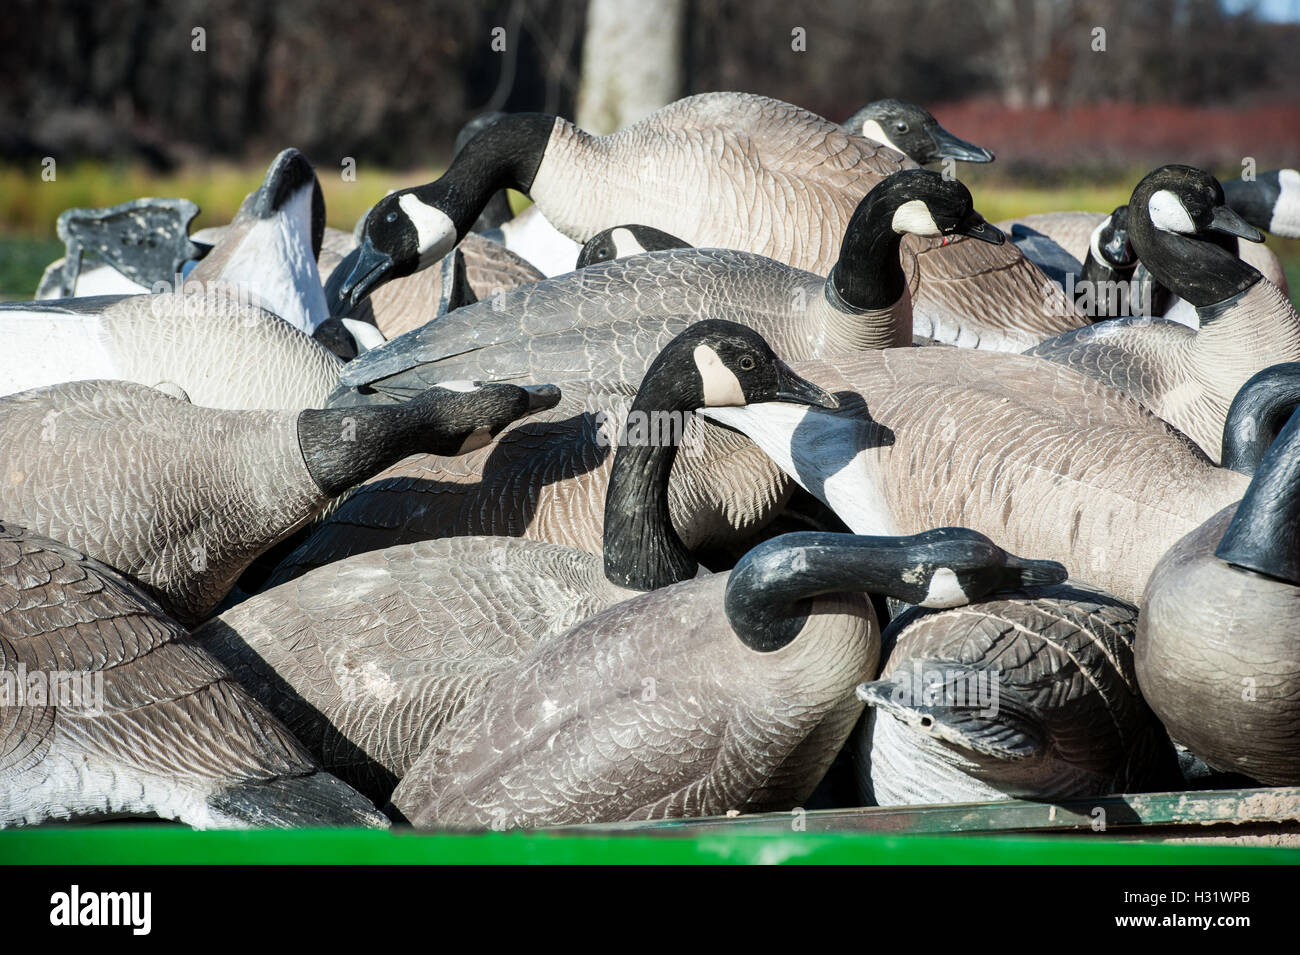 Goose Decoys used for hunting Stock Photo: 122358723 - Alamy